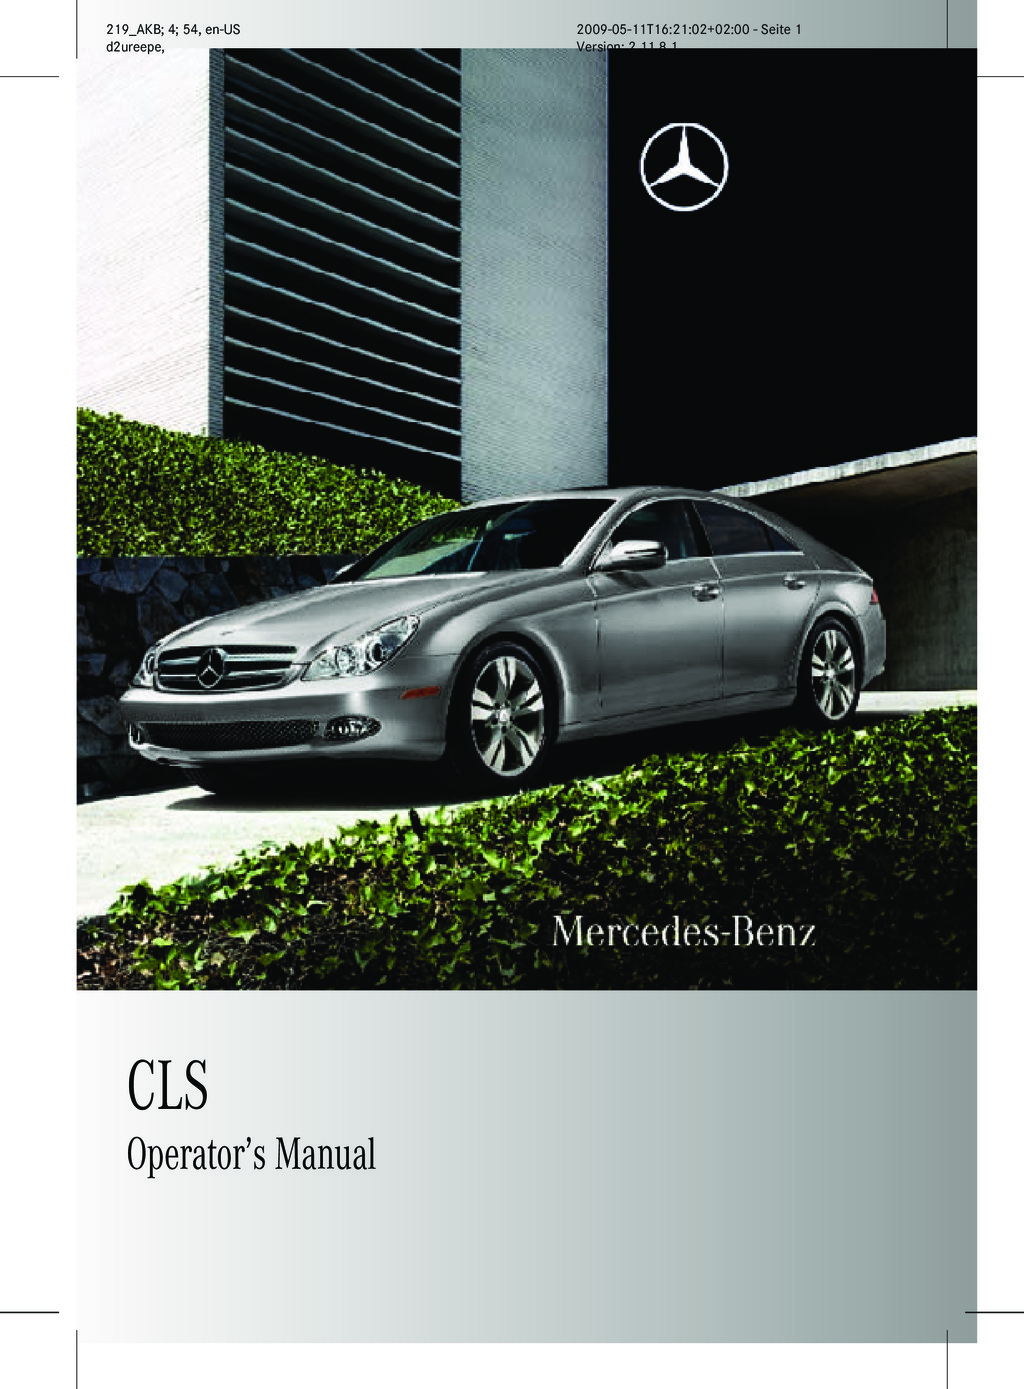 2011 Mercedes-Benz CLS owners manual